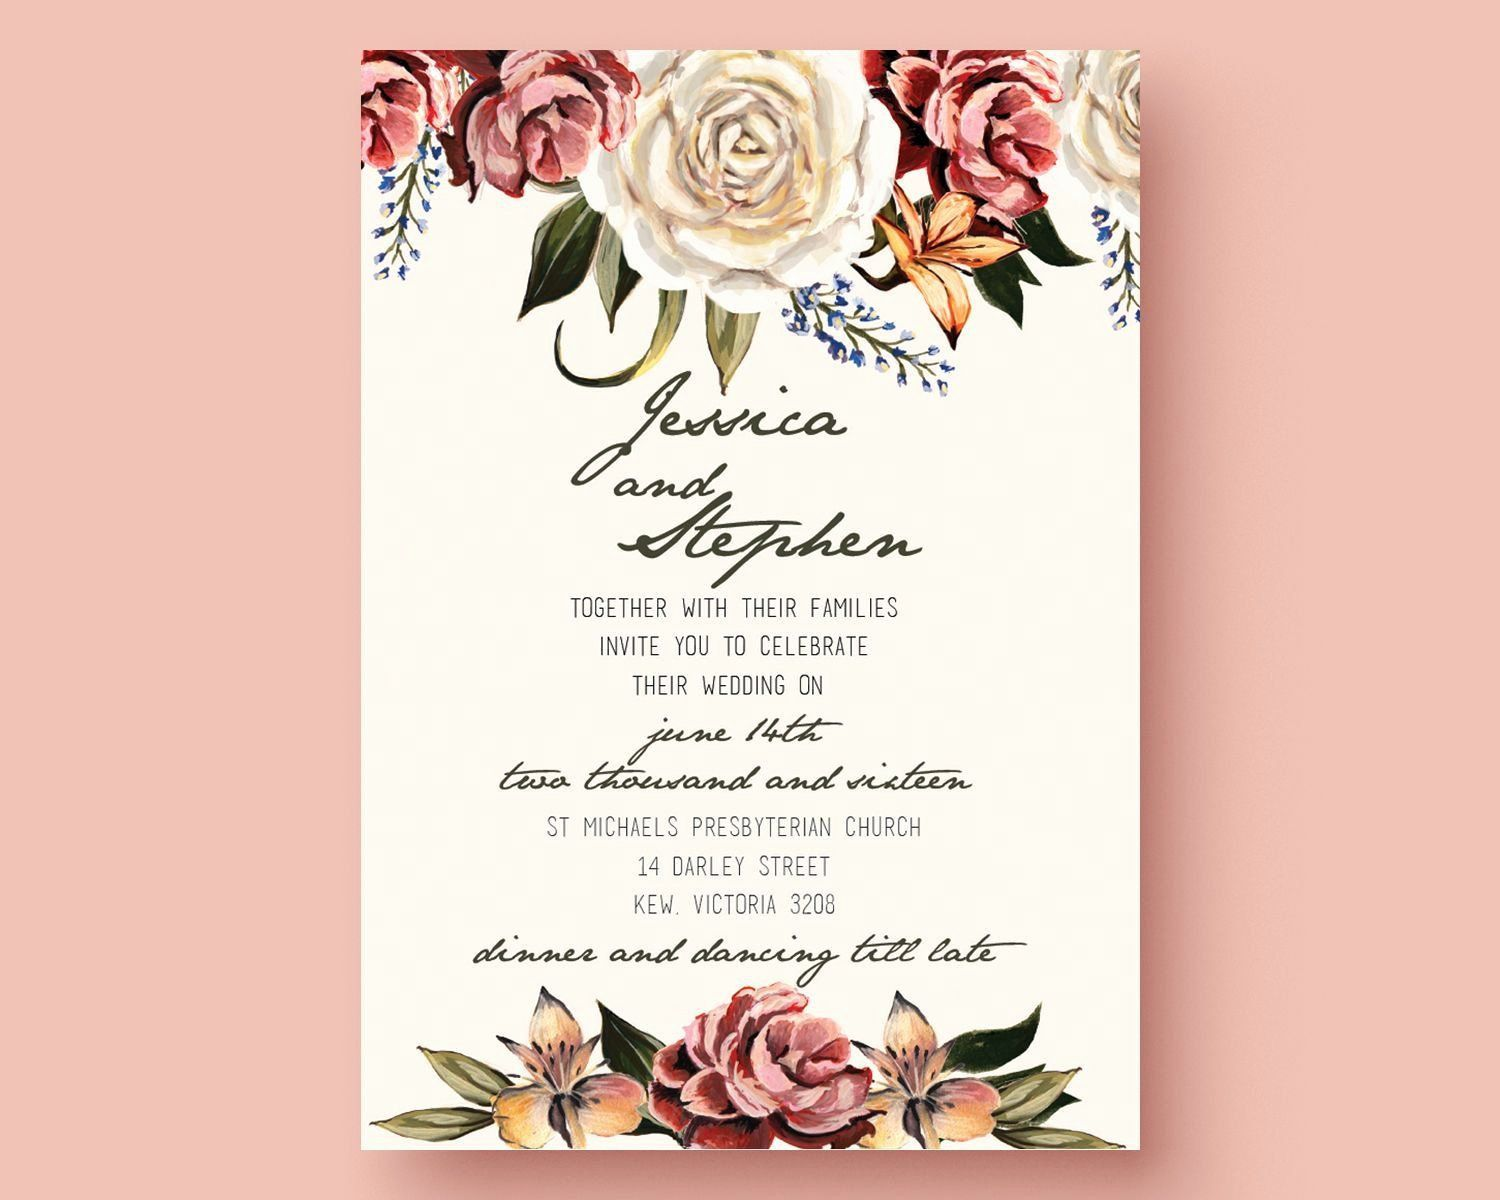 Wedding Invitations Template Free Download In 2021 Free Wedding Invitation Templates Wedding Invitation Card Template Wedding Invitation Templates